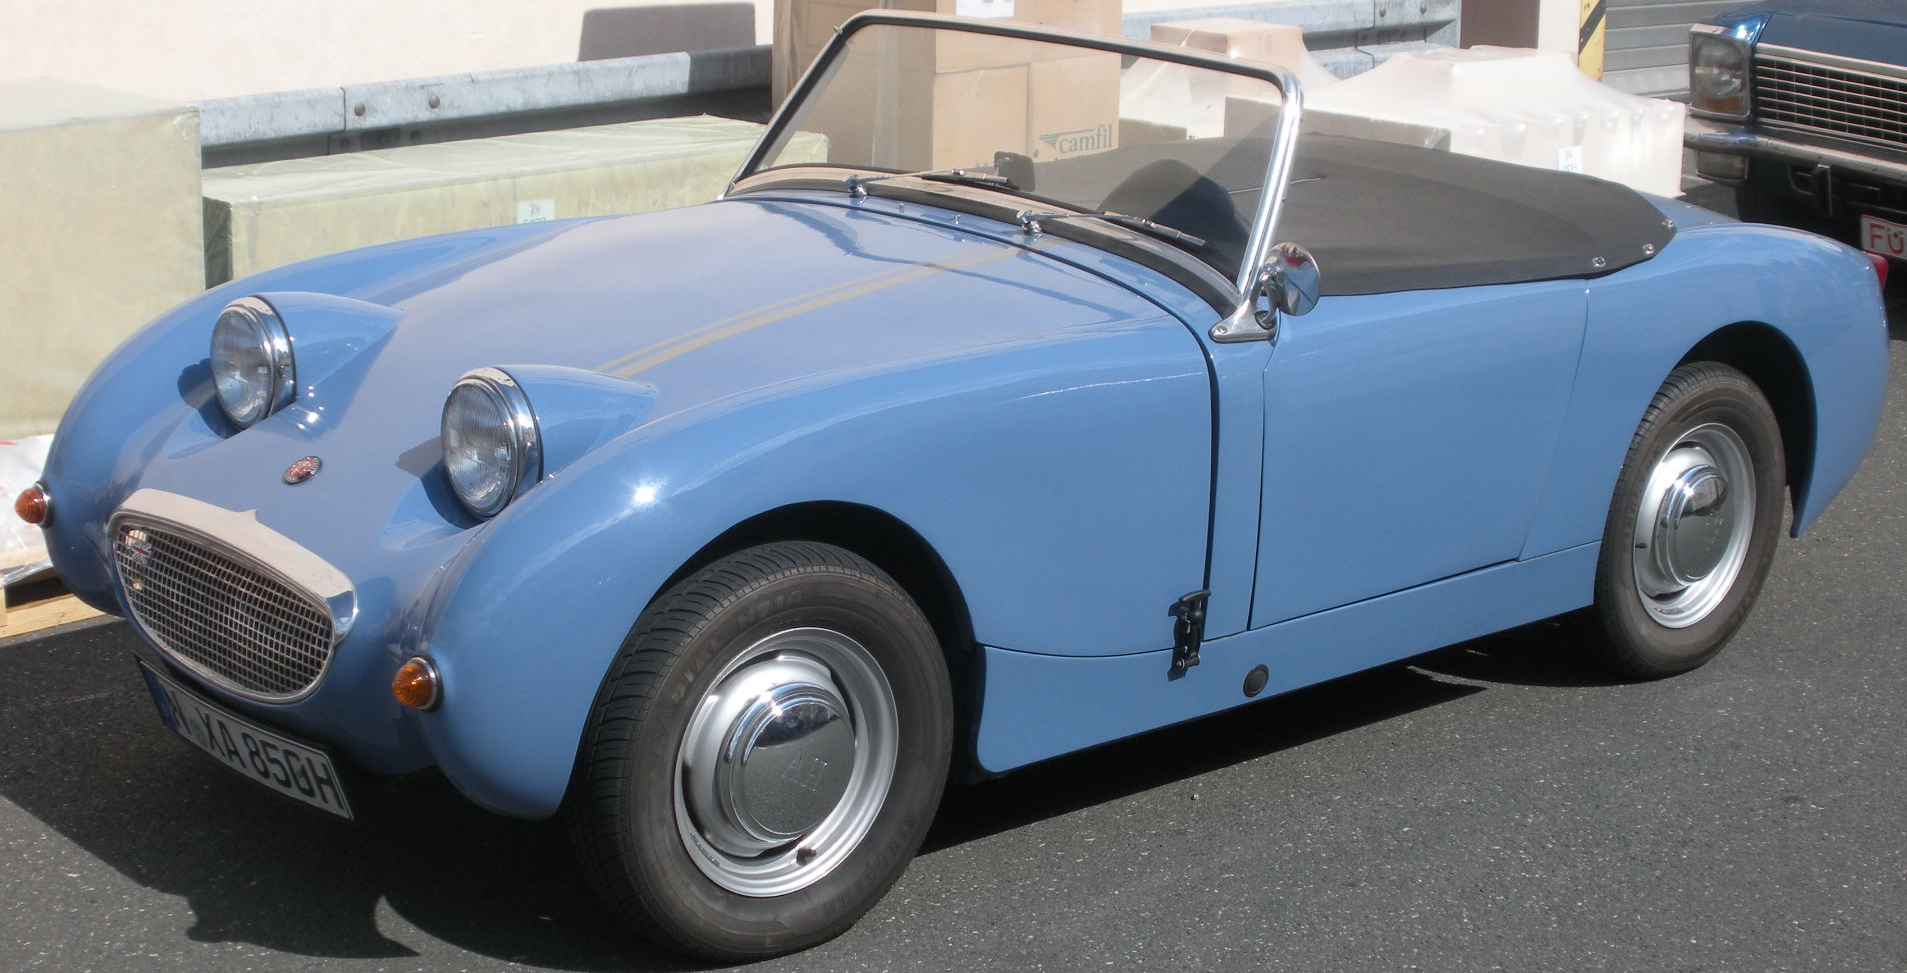 1961 Austin Healey Sprite   Information and photos   MOMENTcar     Austin Healey Sprite 1961  1